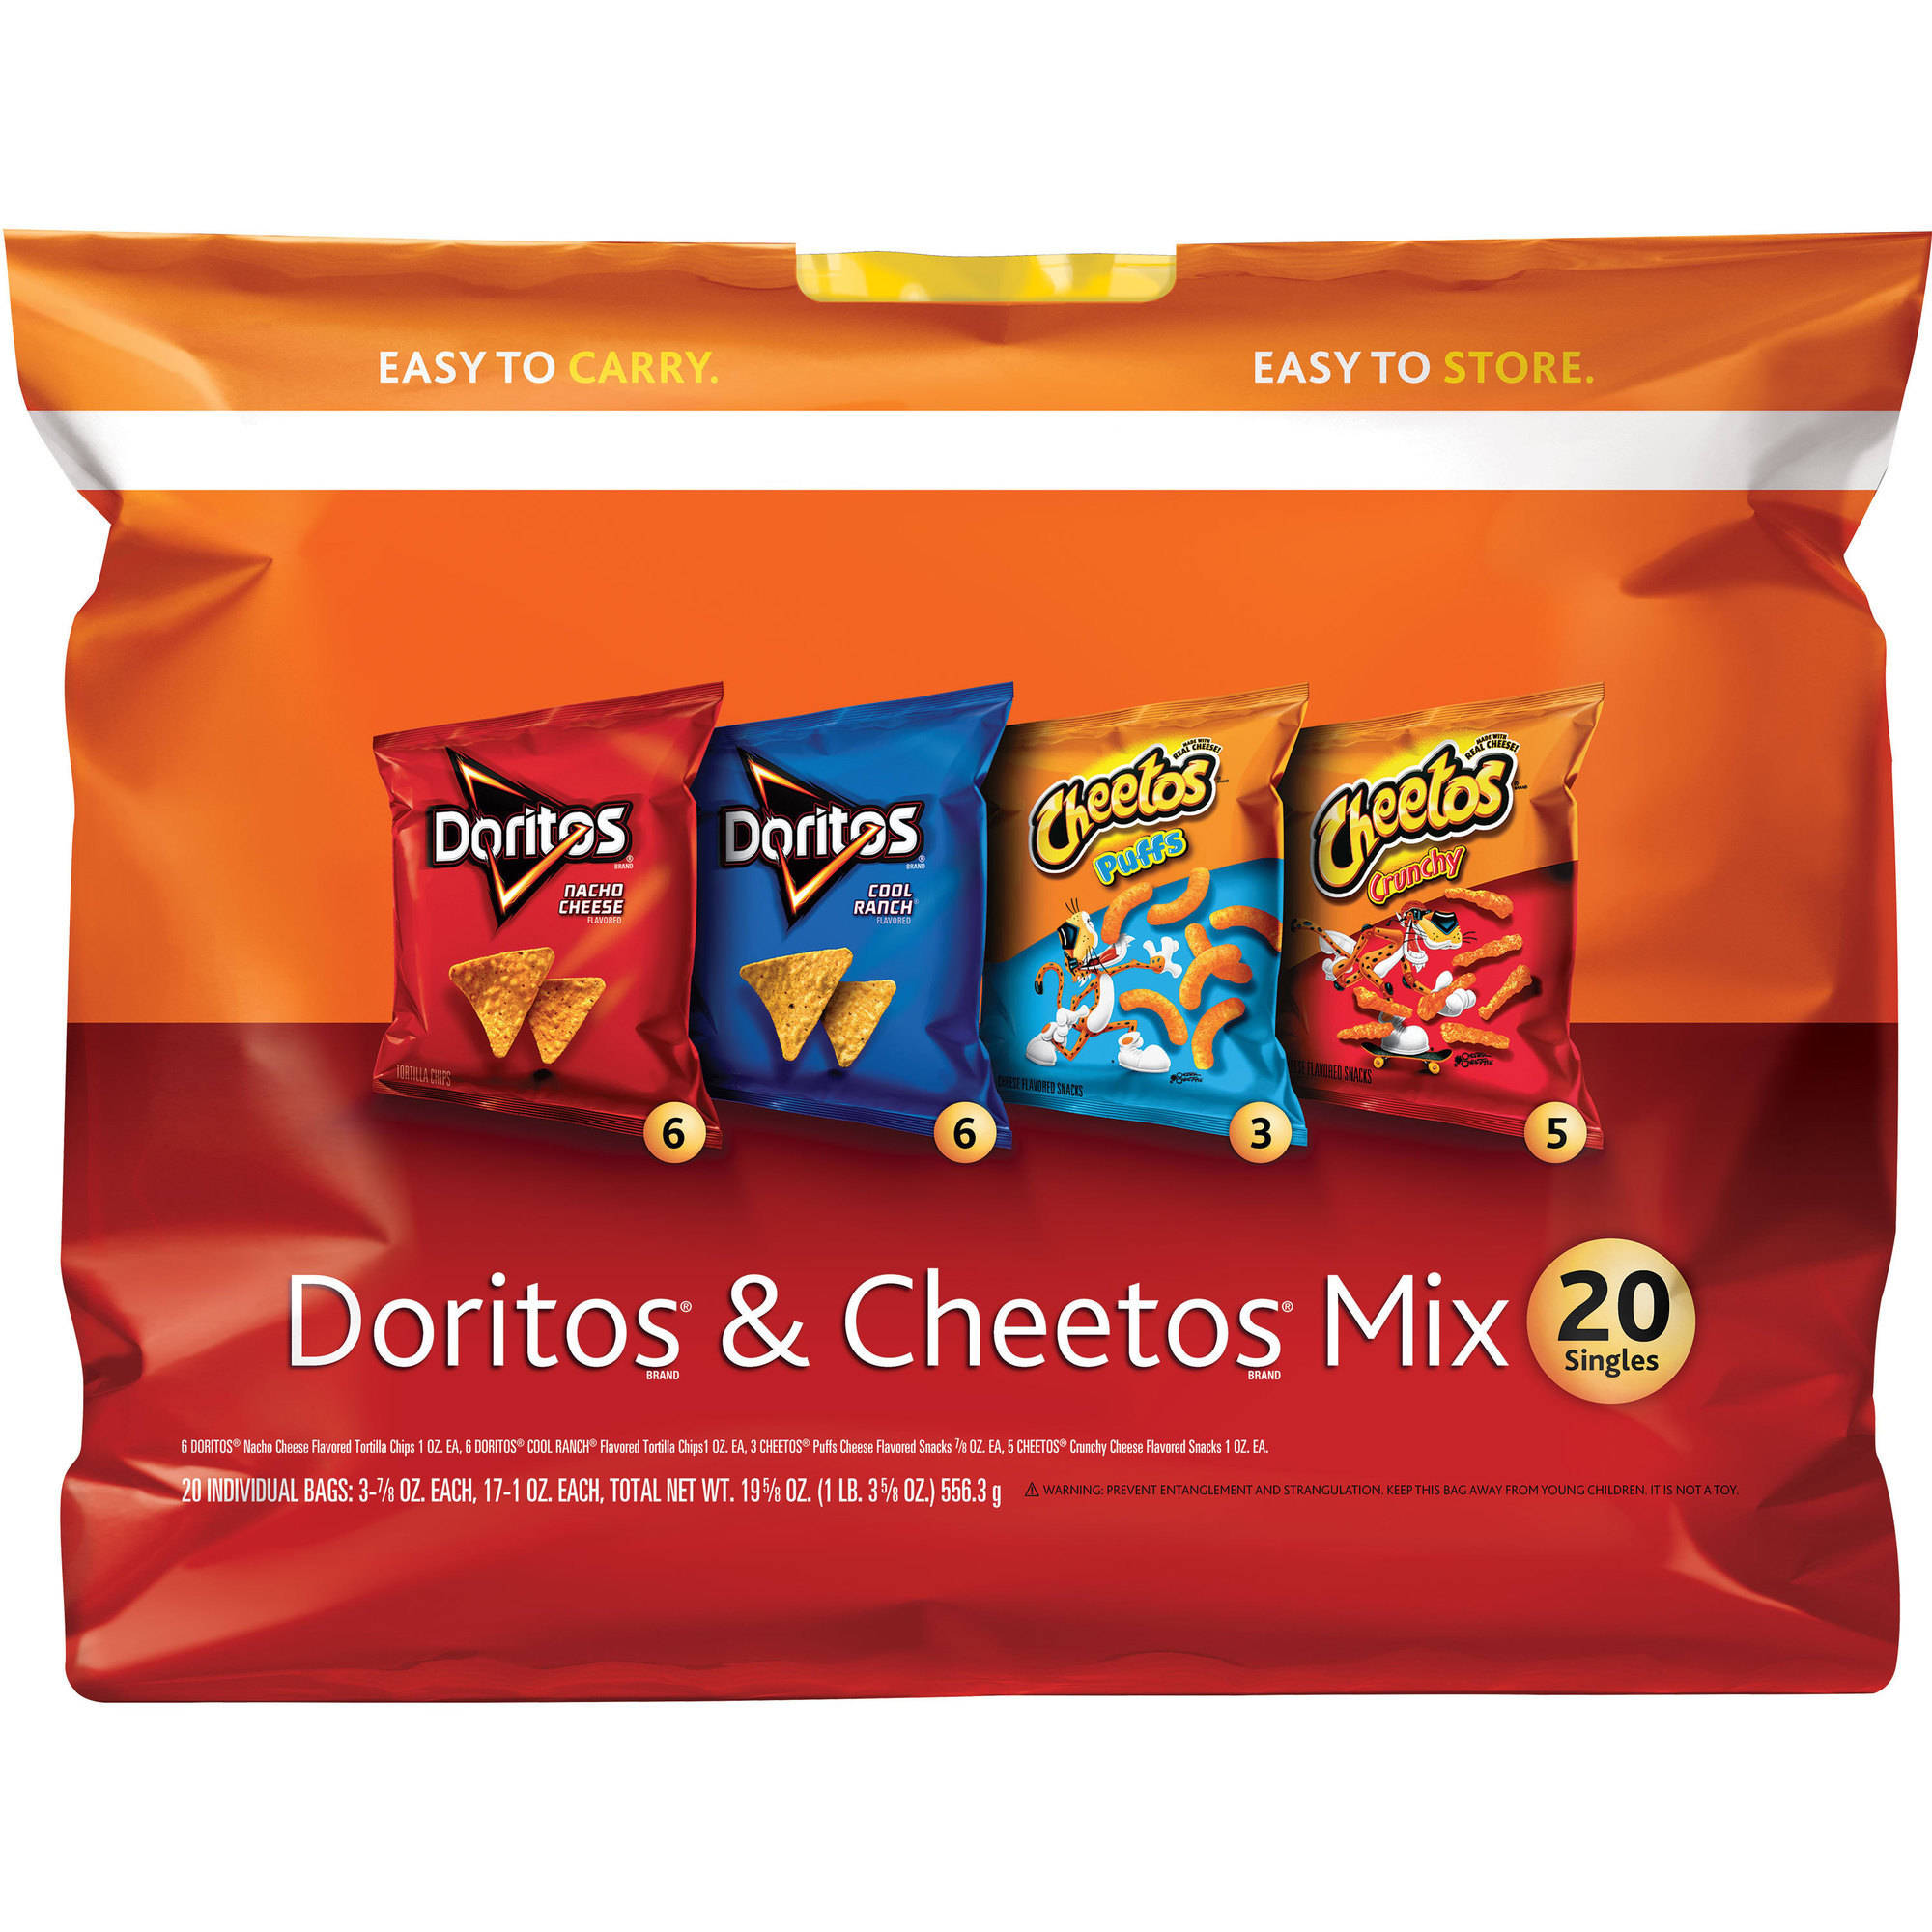 Doritos & Cheetos Mix Variety Pack, 20 count, 19.63 oz